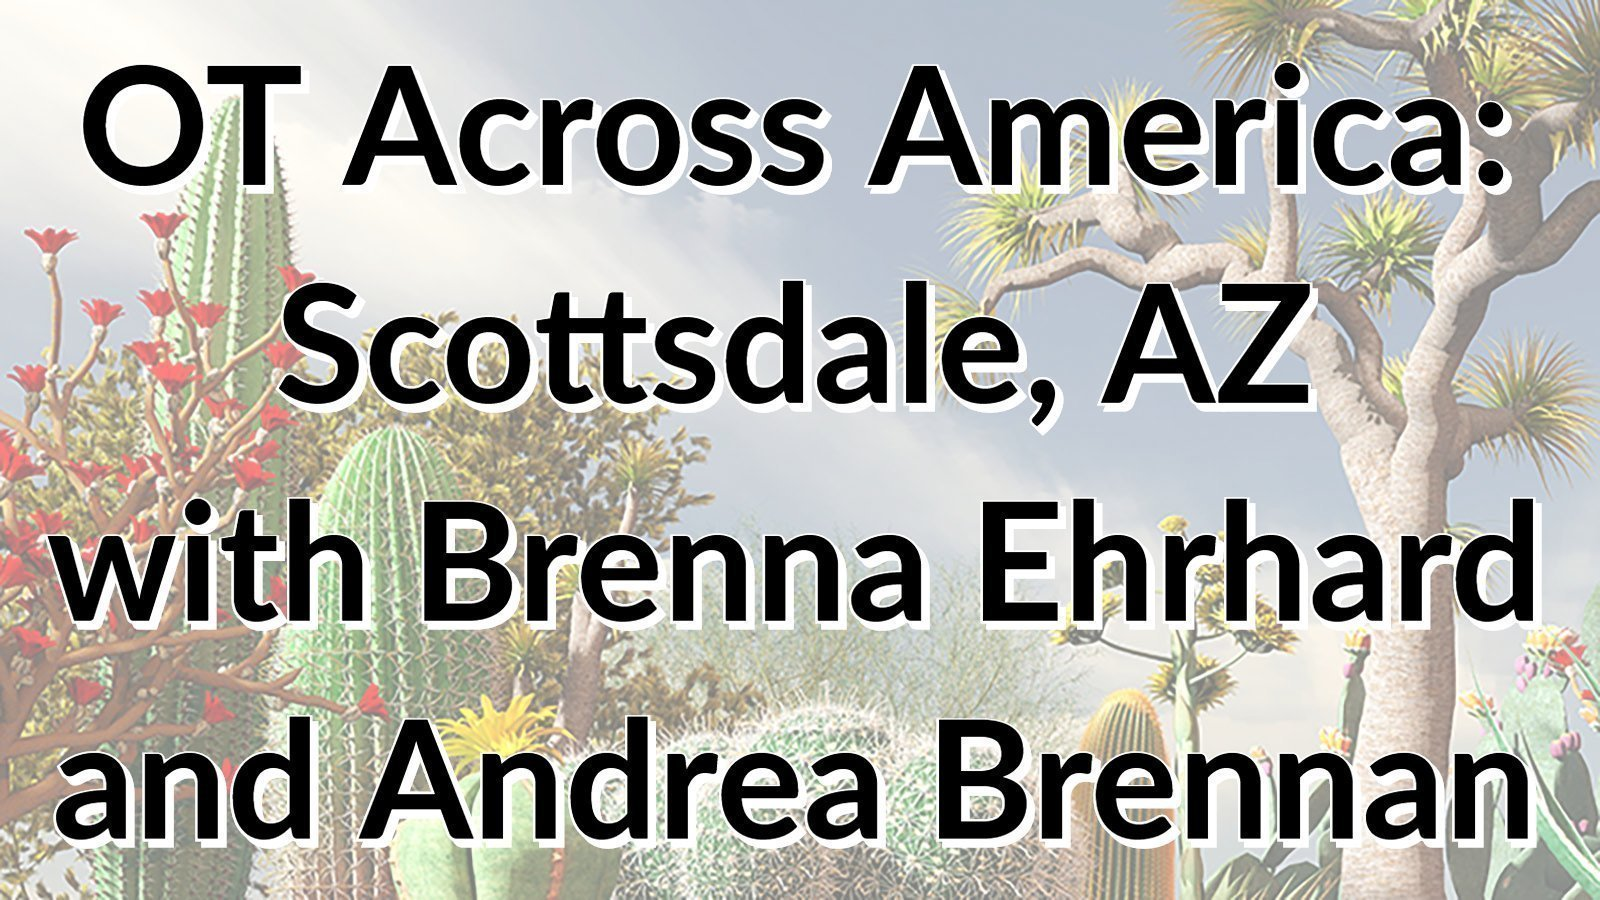 OT Across America: Scottsdale, AZ with Brenna and Andrea